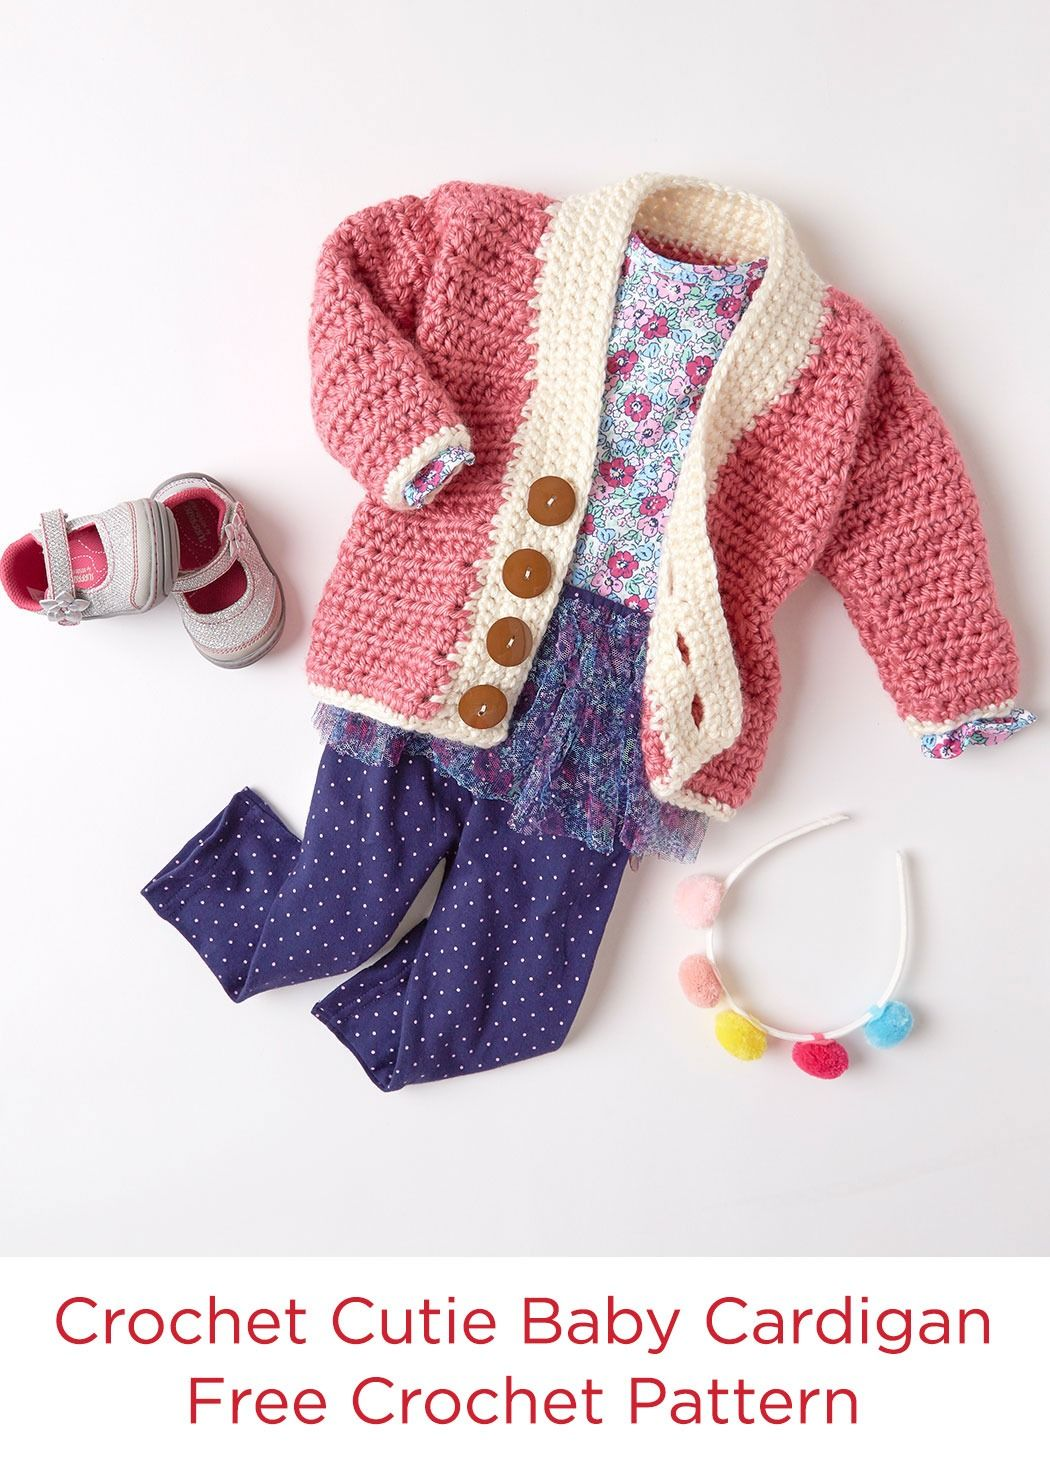 Crochet Cutie Baby Cardigan Free Crochet Pattern in Red ...